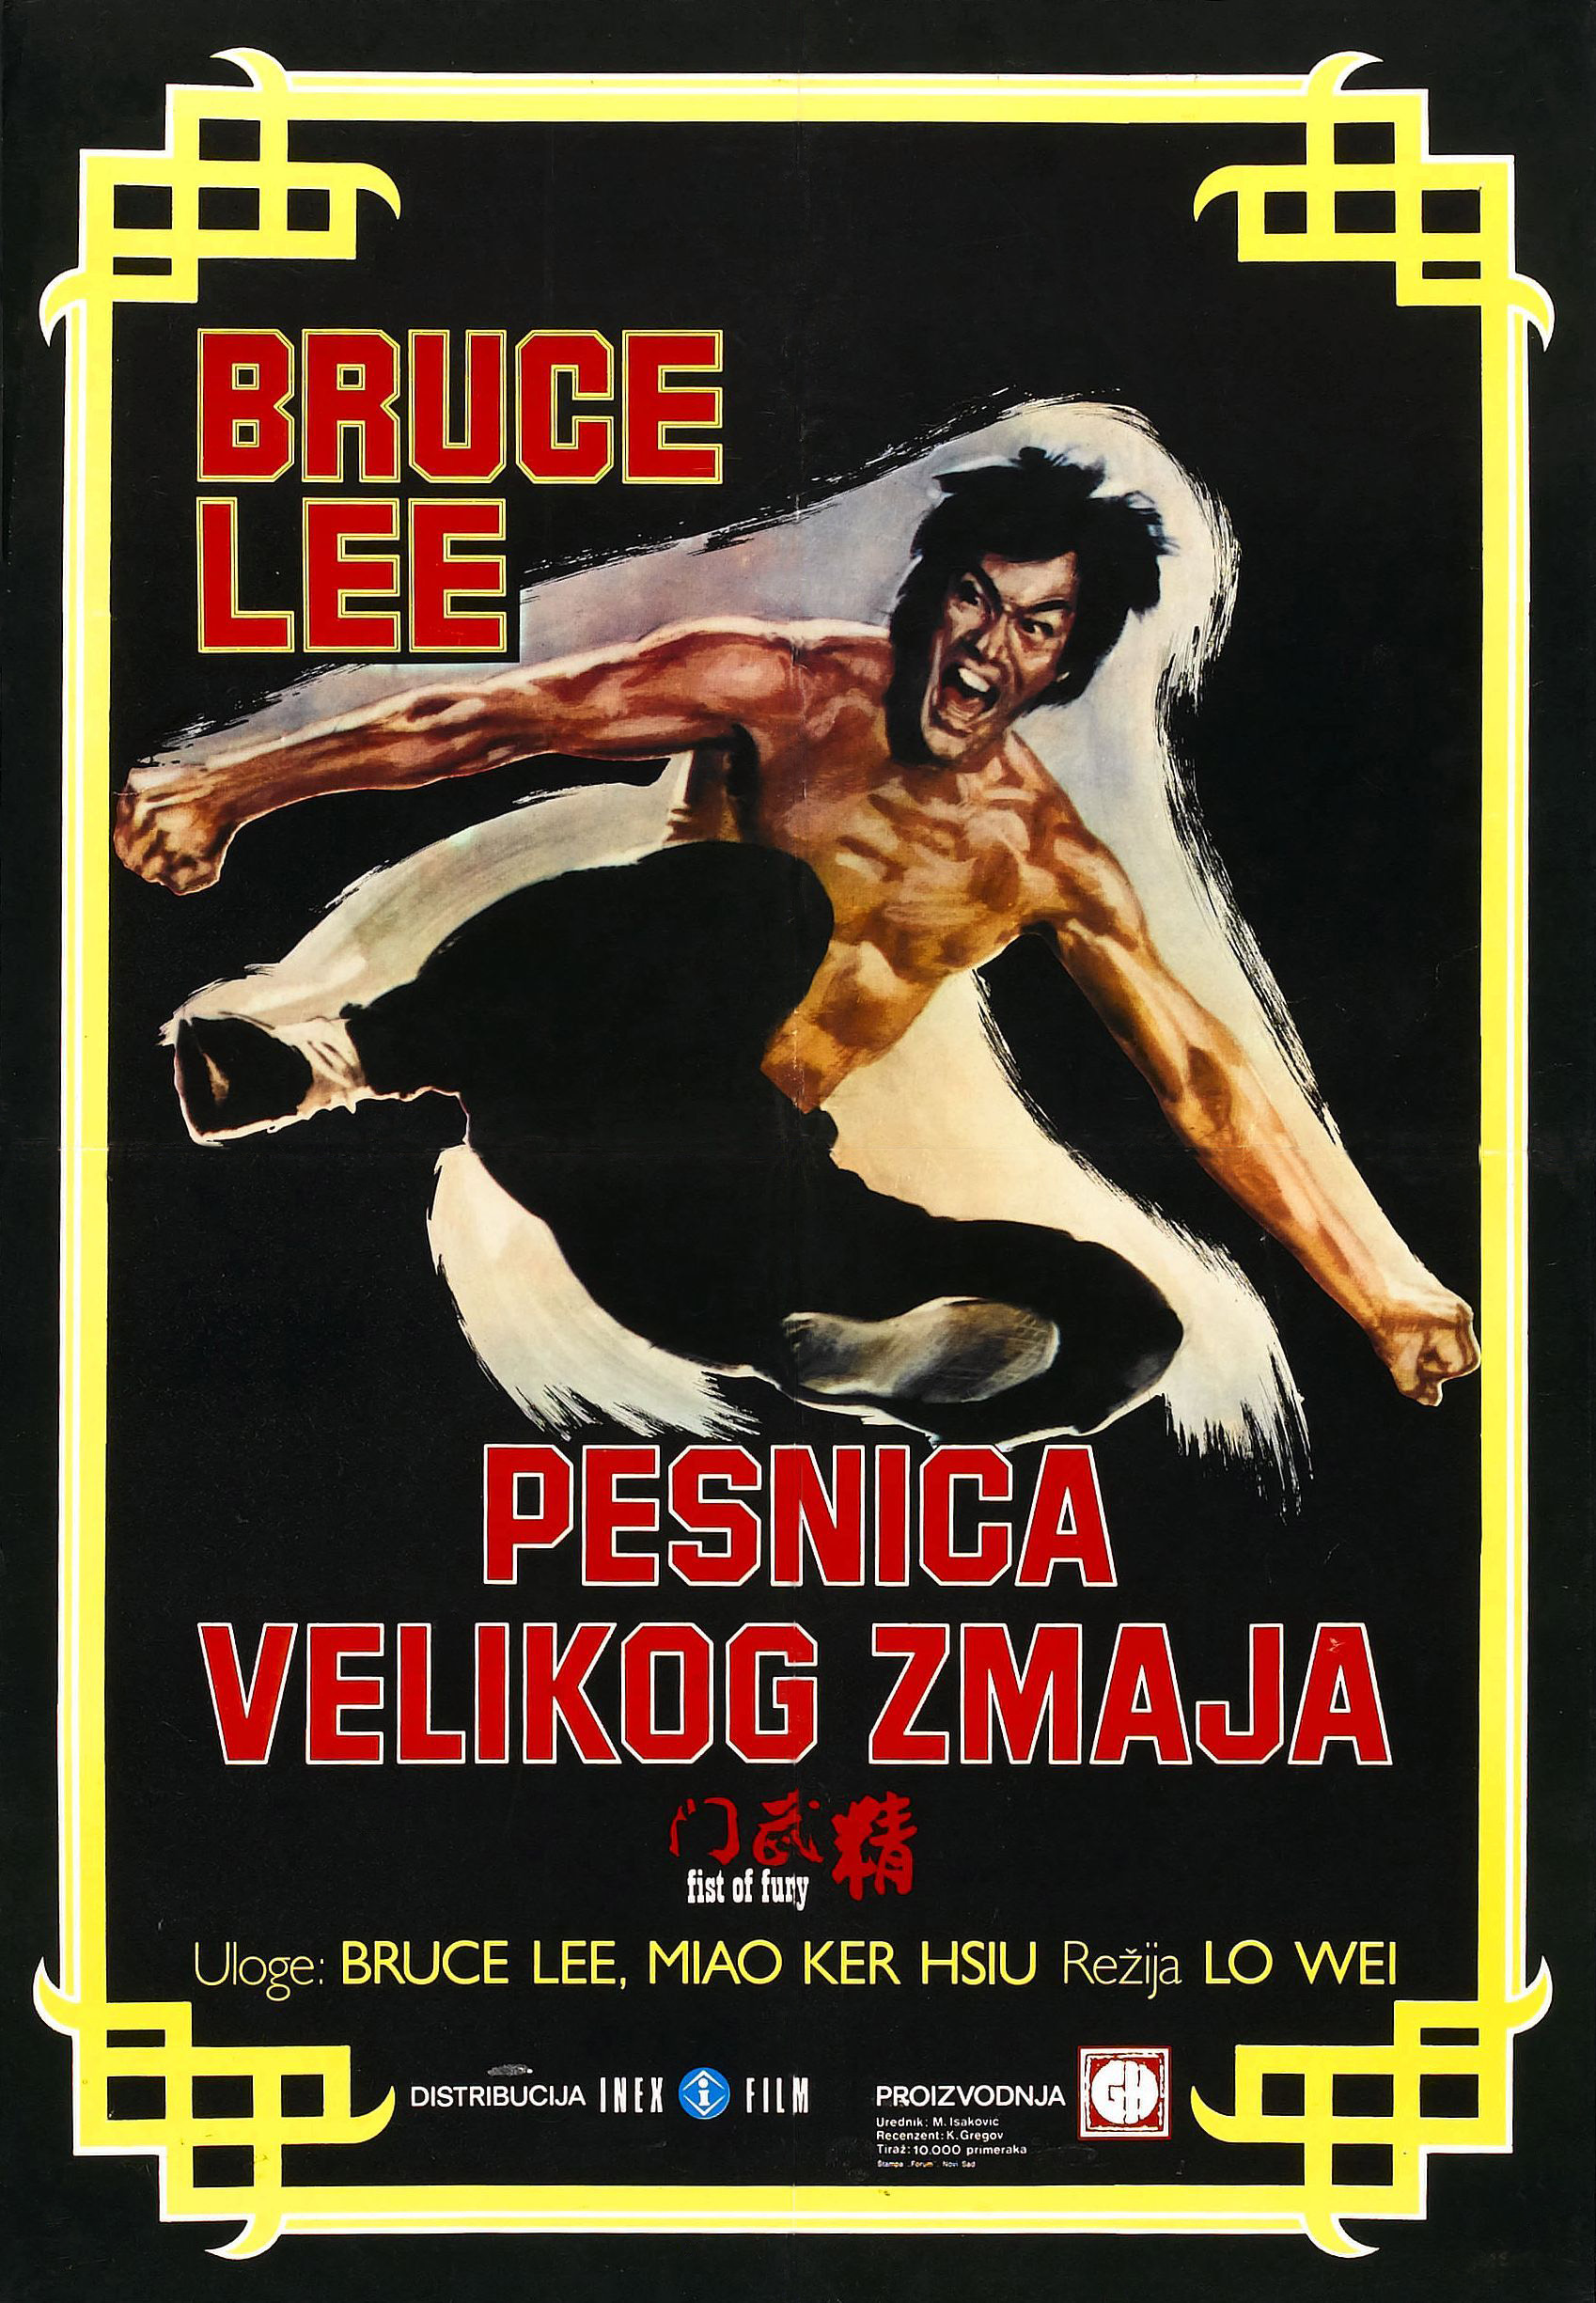 The 大老板 Slovenian poster